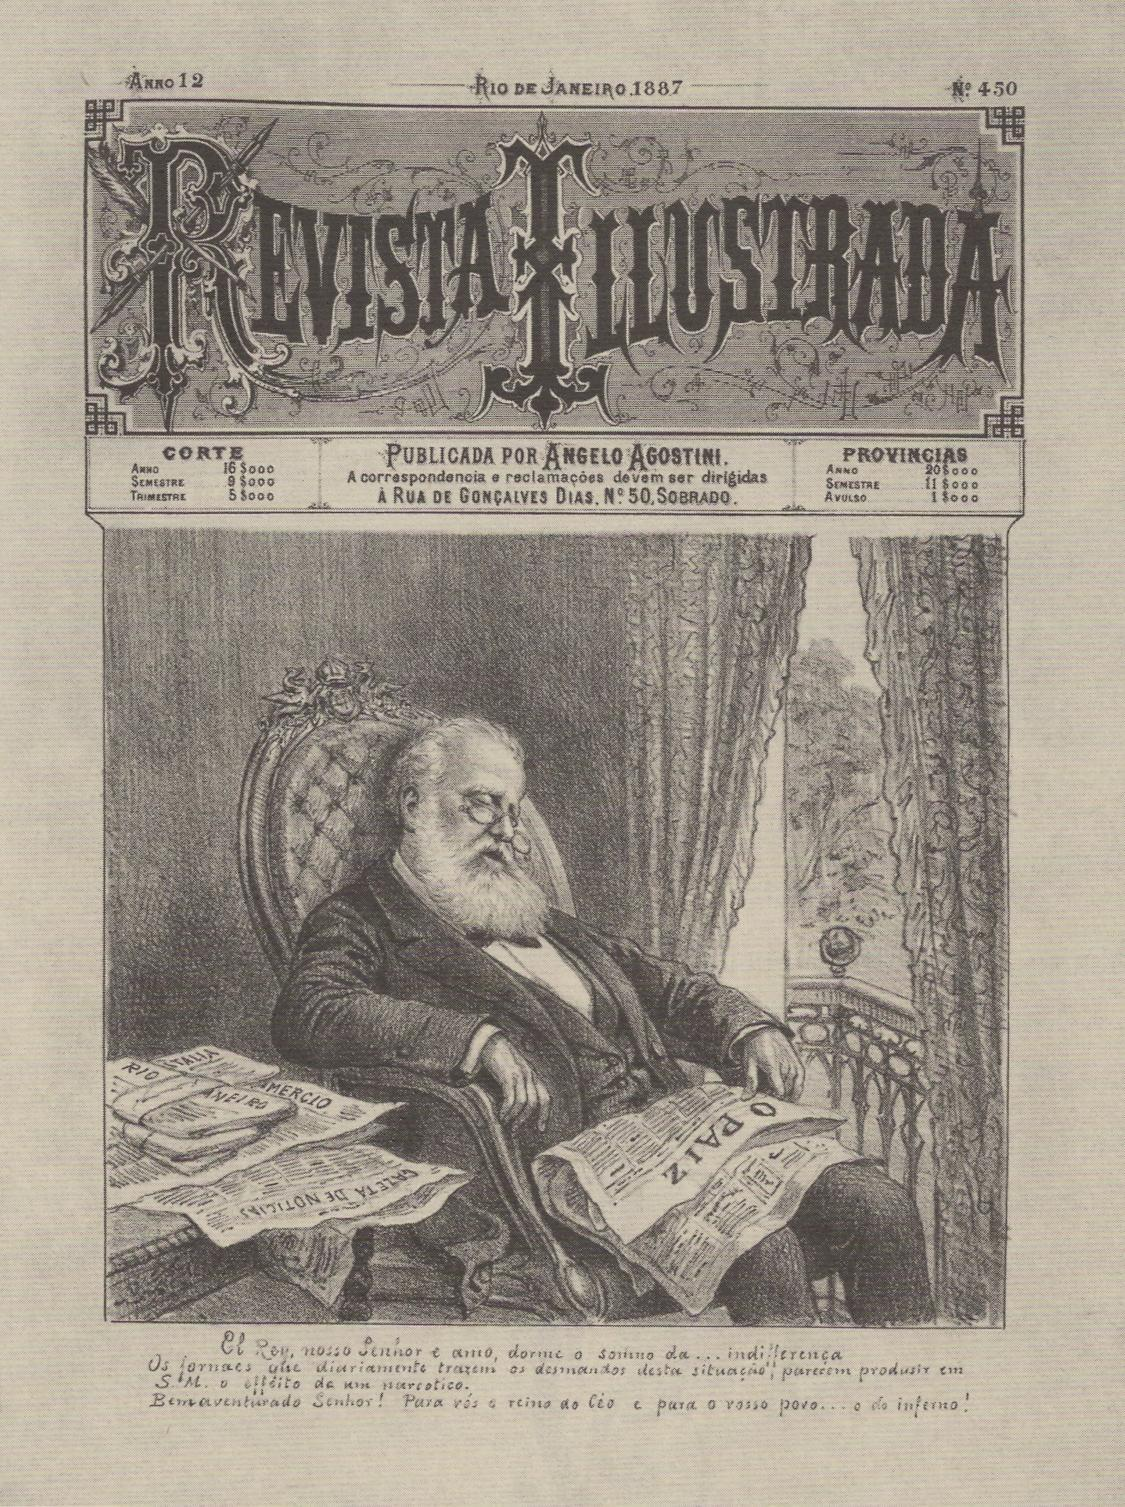 Angelo Agostini (1843-1910) Revista Illustrada nº450 1887